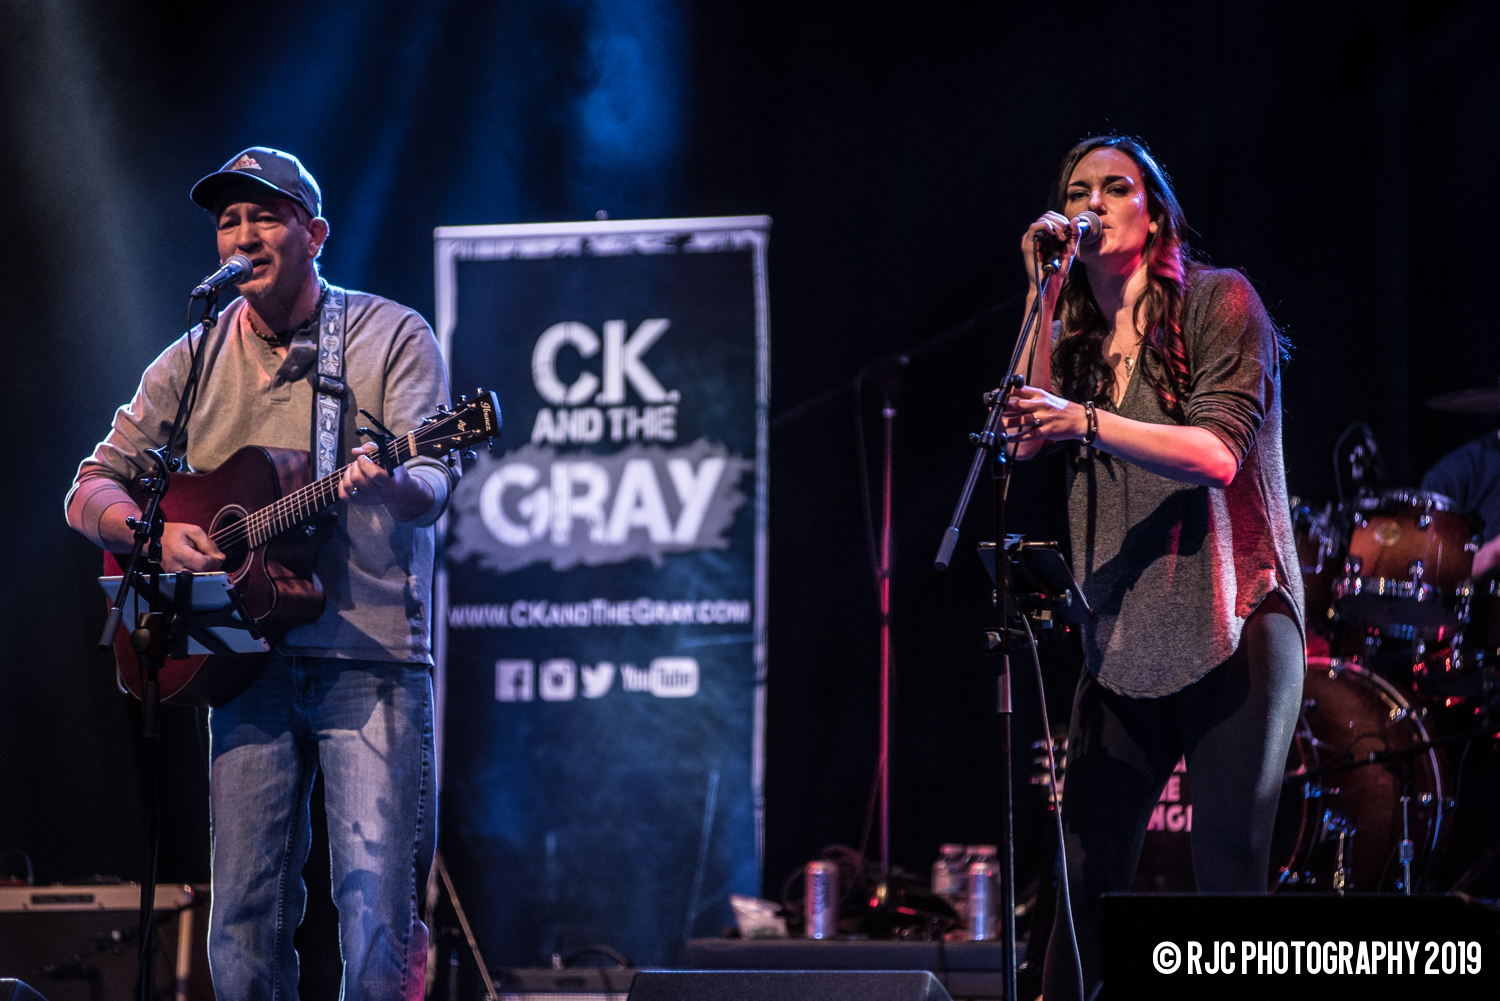 Kris and Chrissy C.K. and The Gray